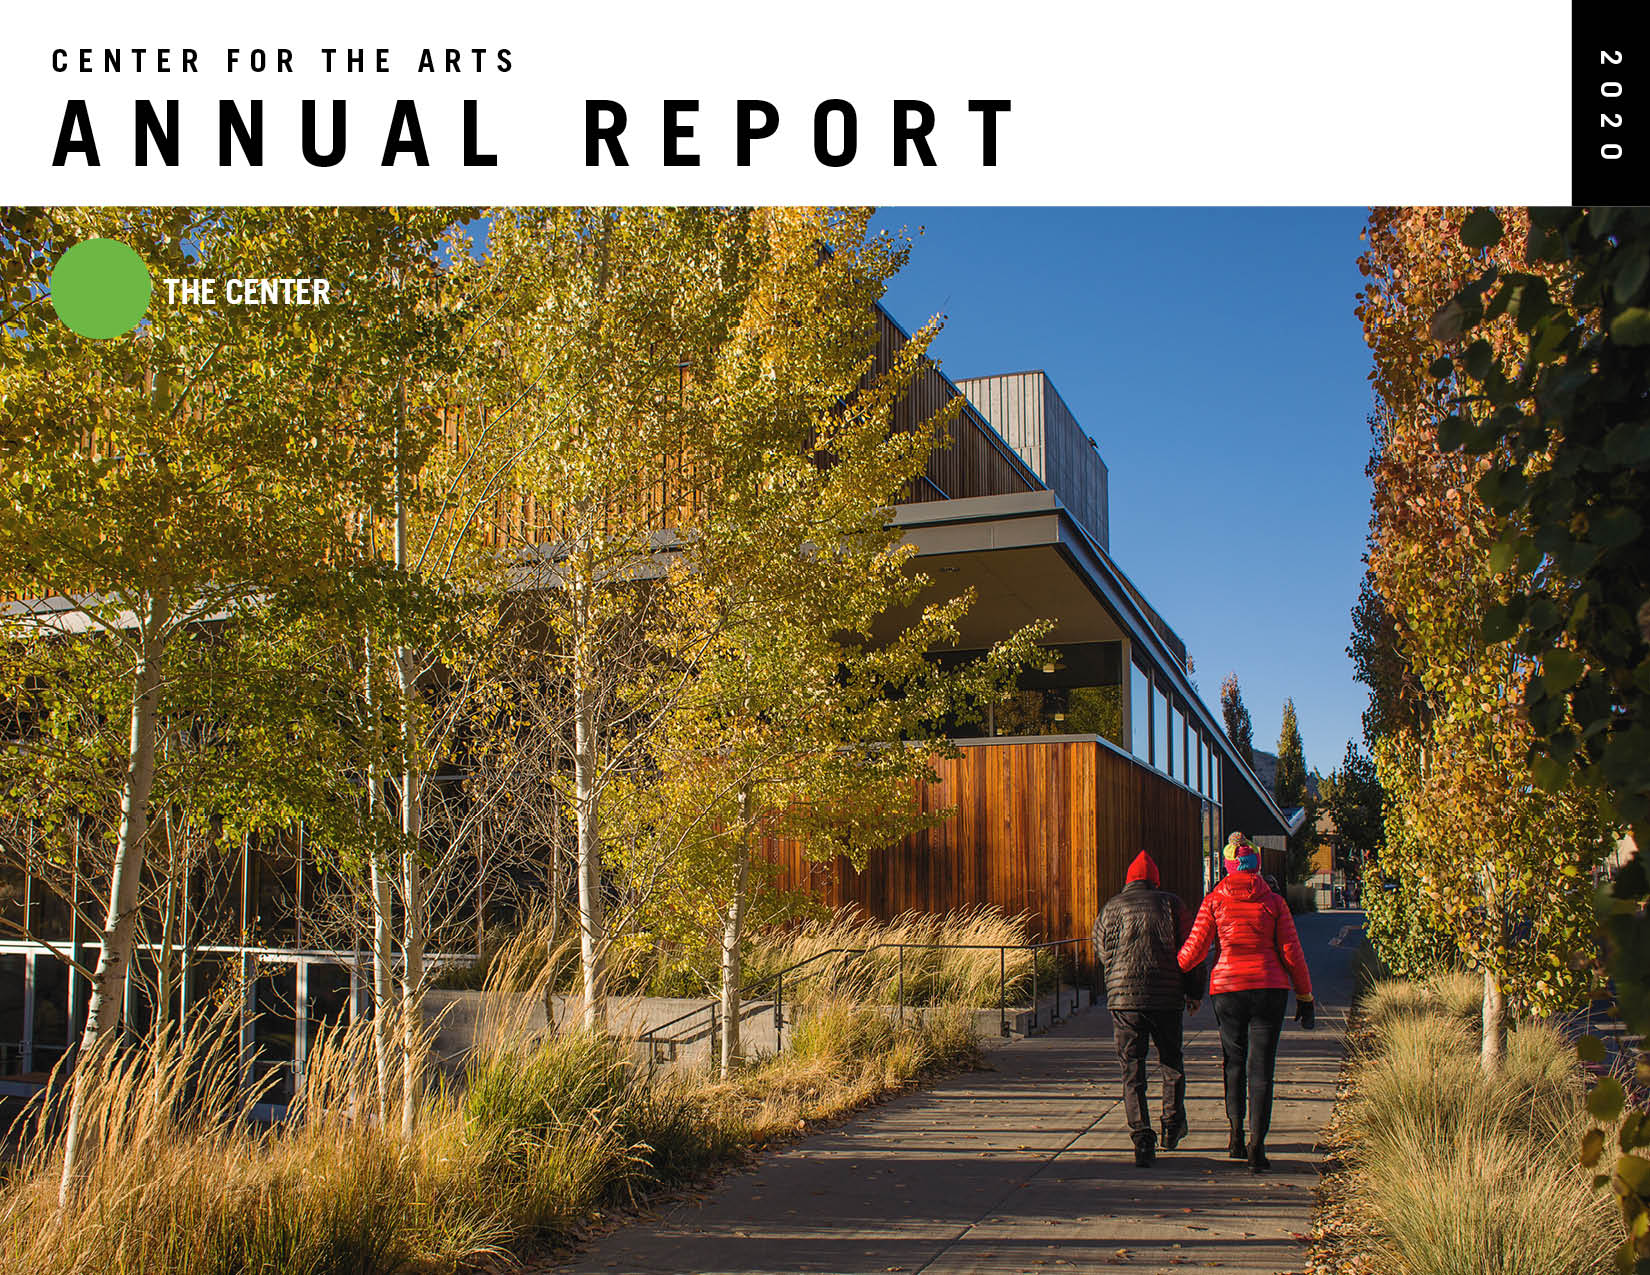 2020AnnualReport_8.5x11_cover.jpg